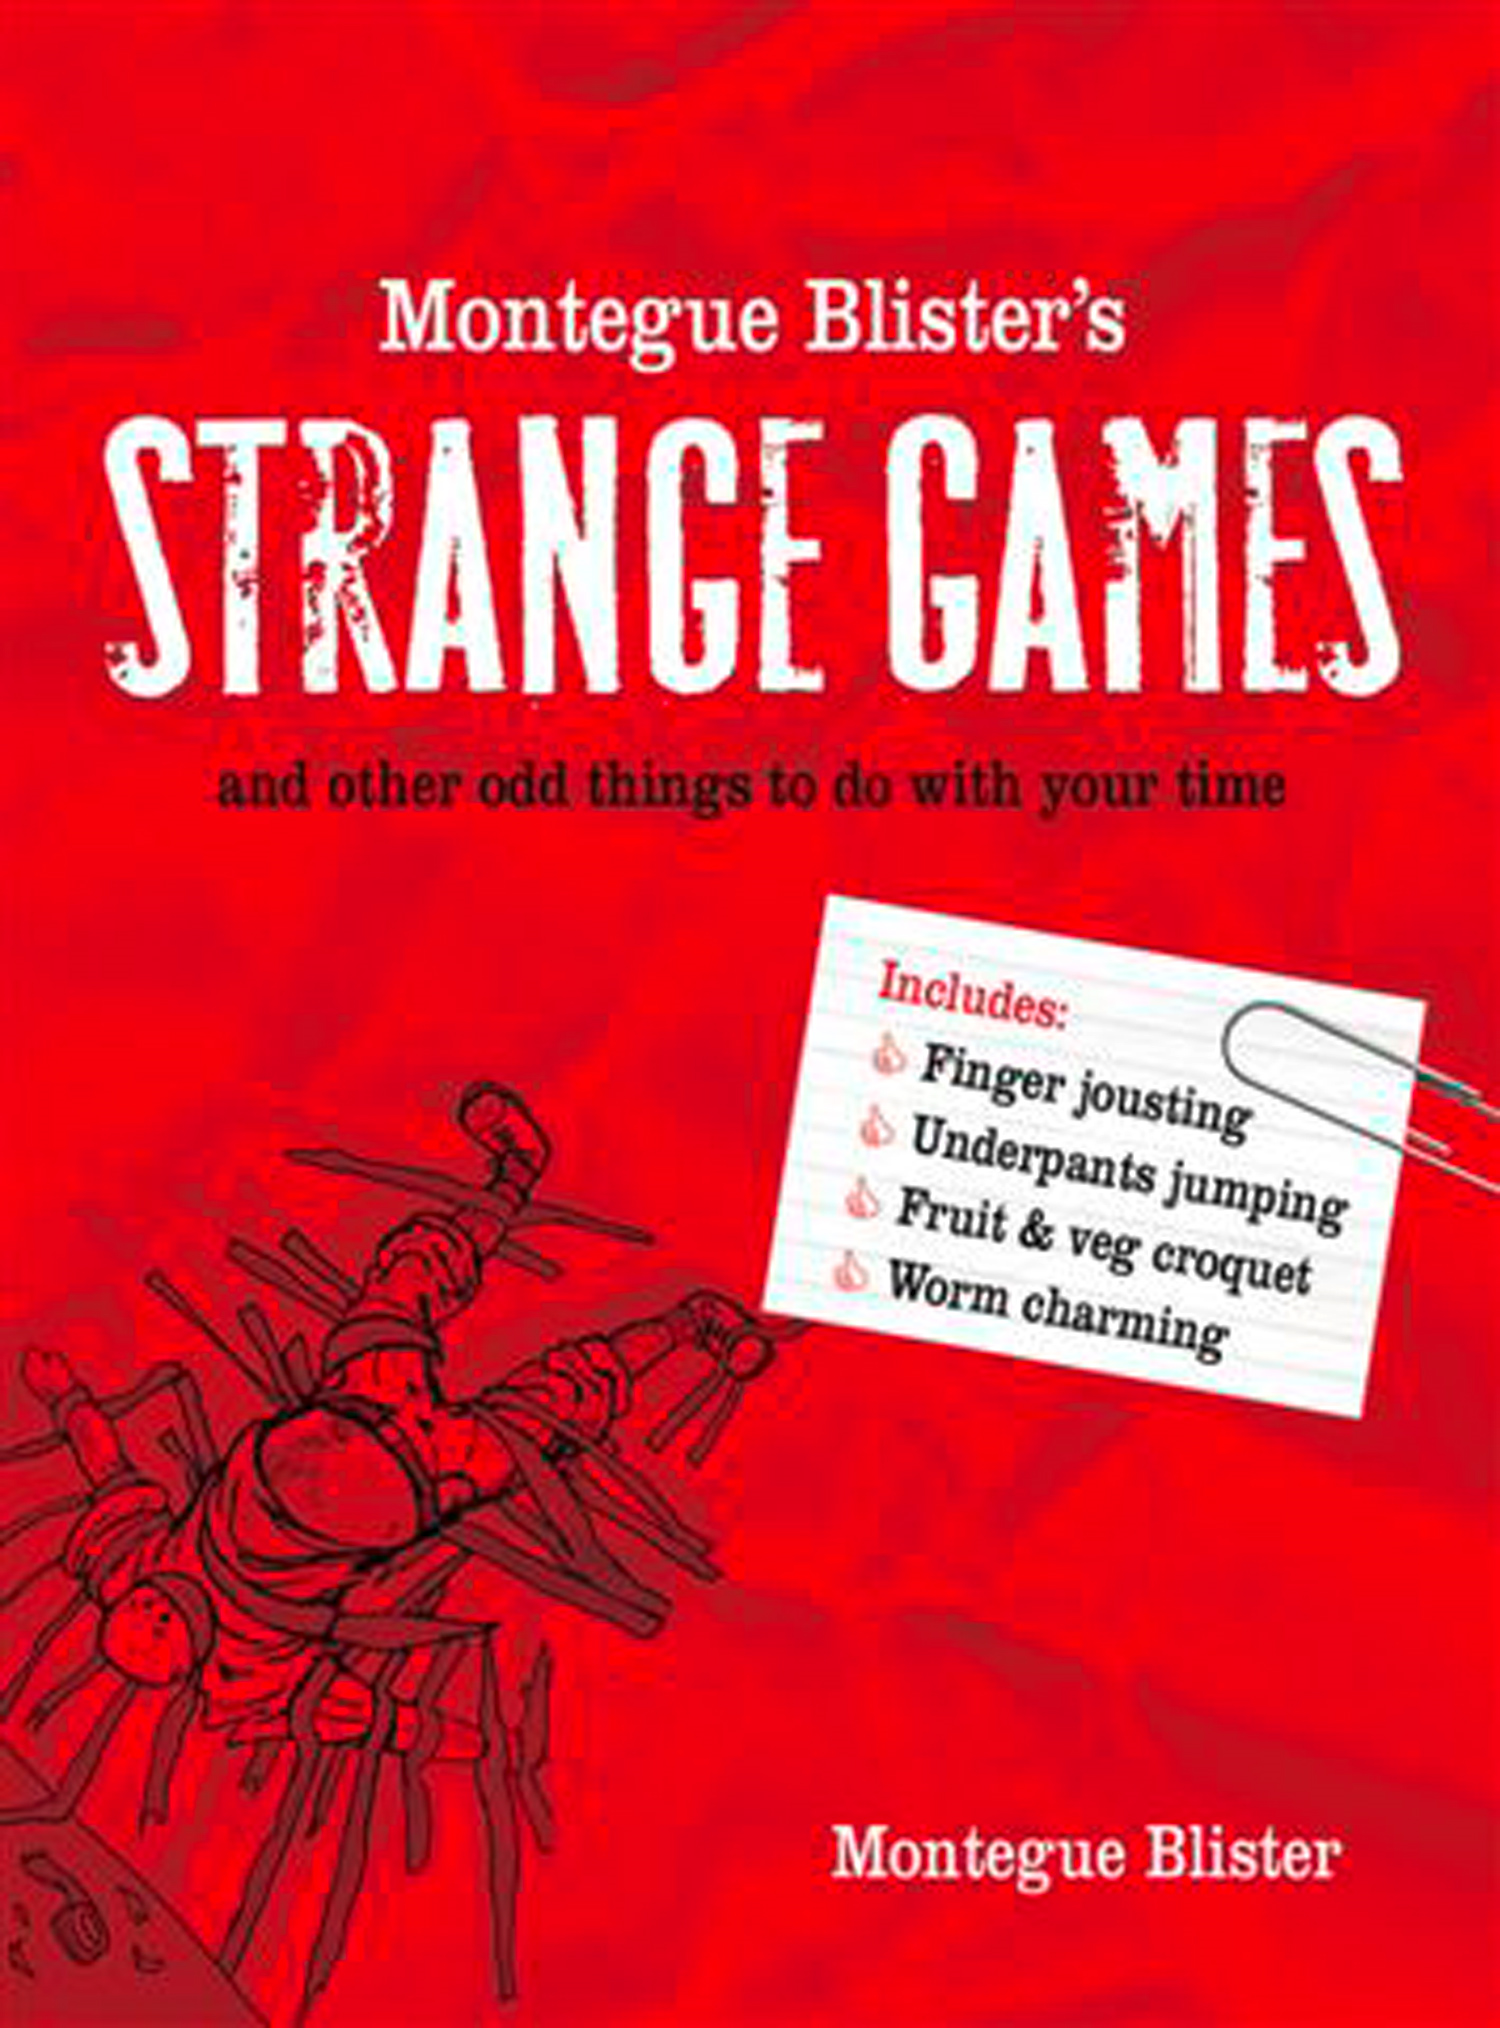 Montegue Blister?s Strange Games: and other odd things to do with your time